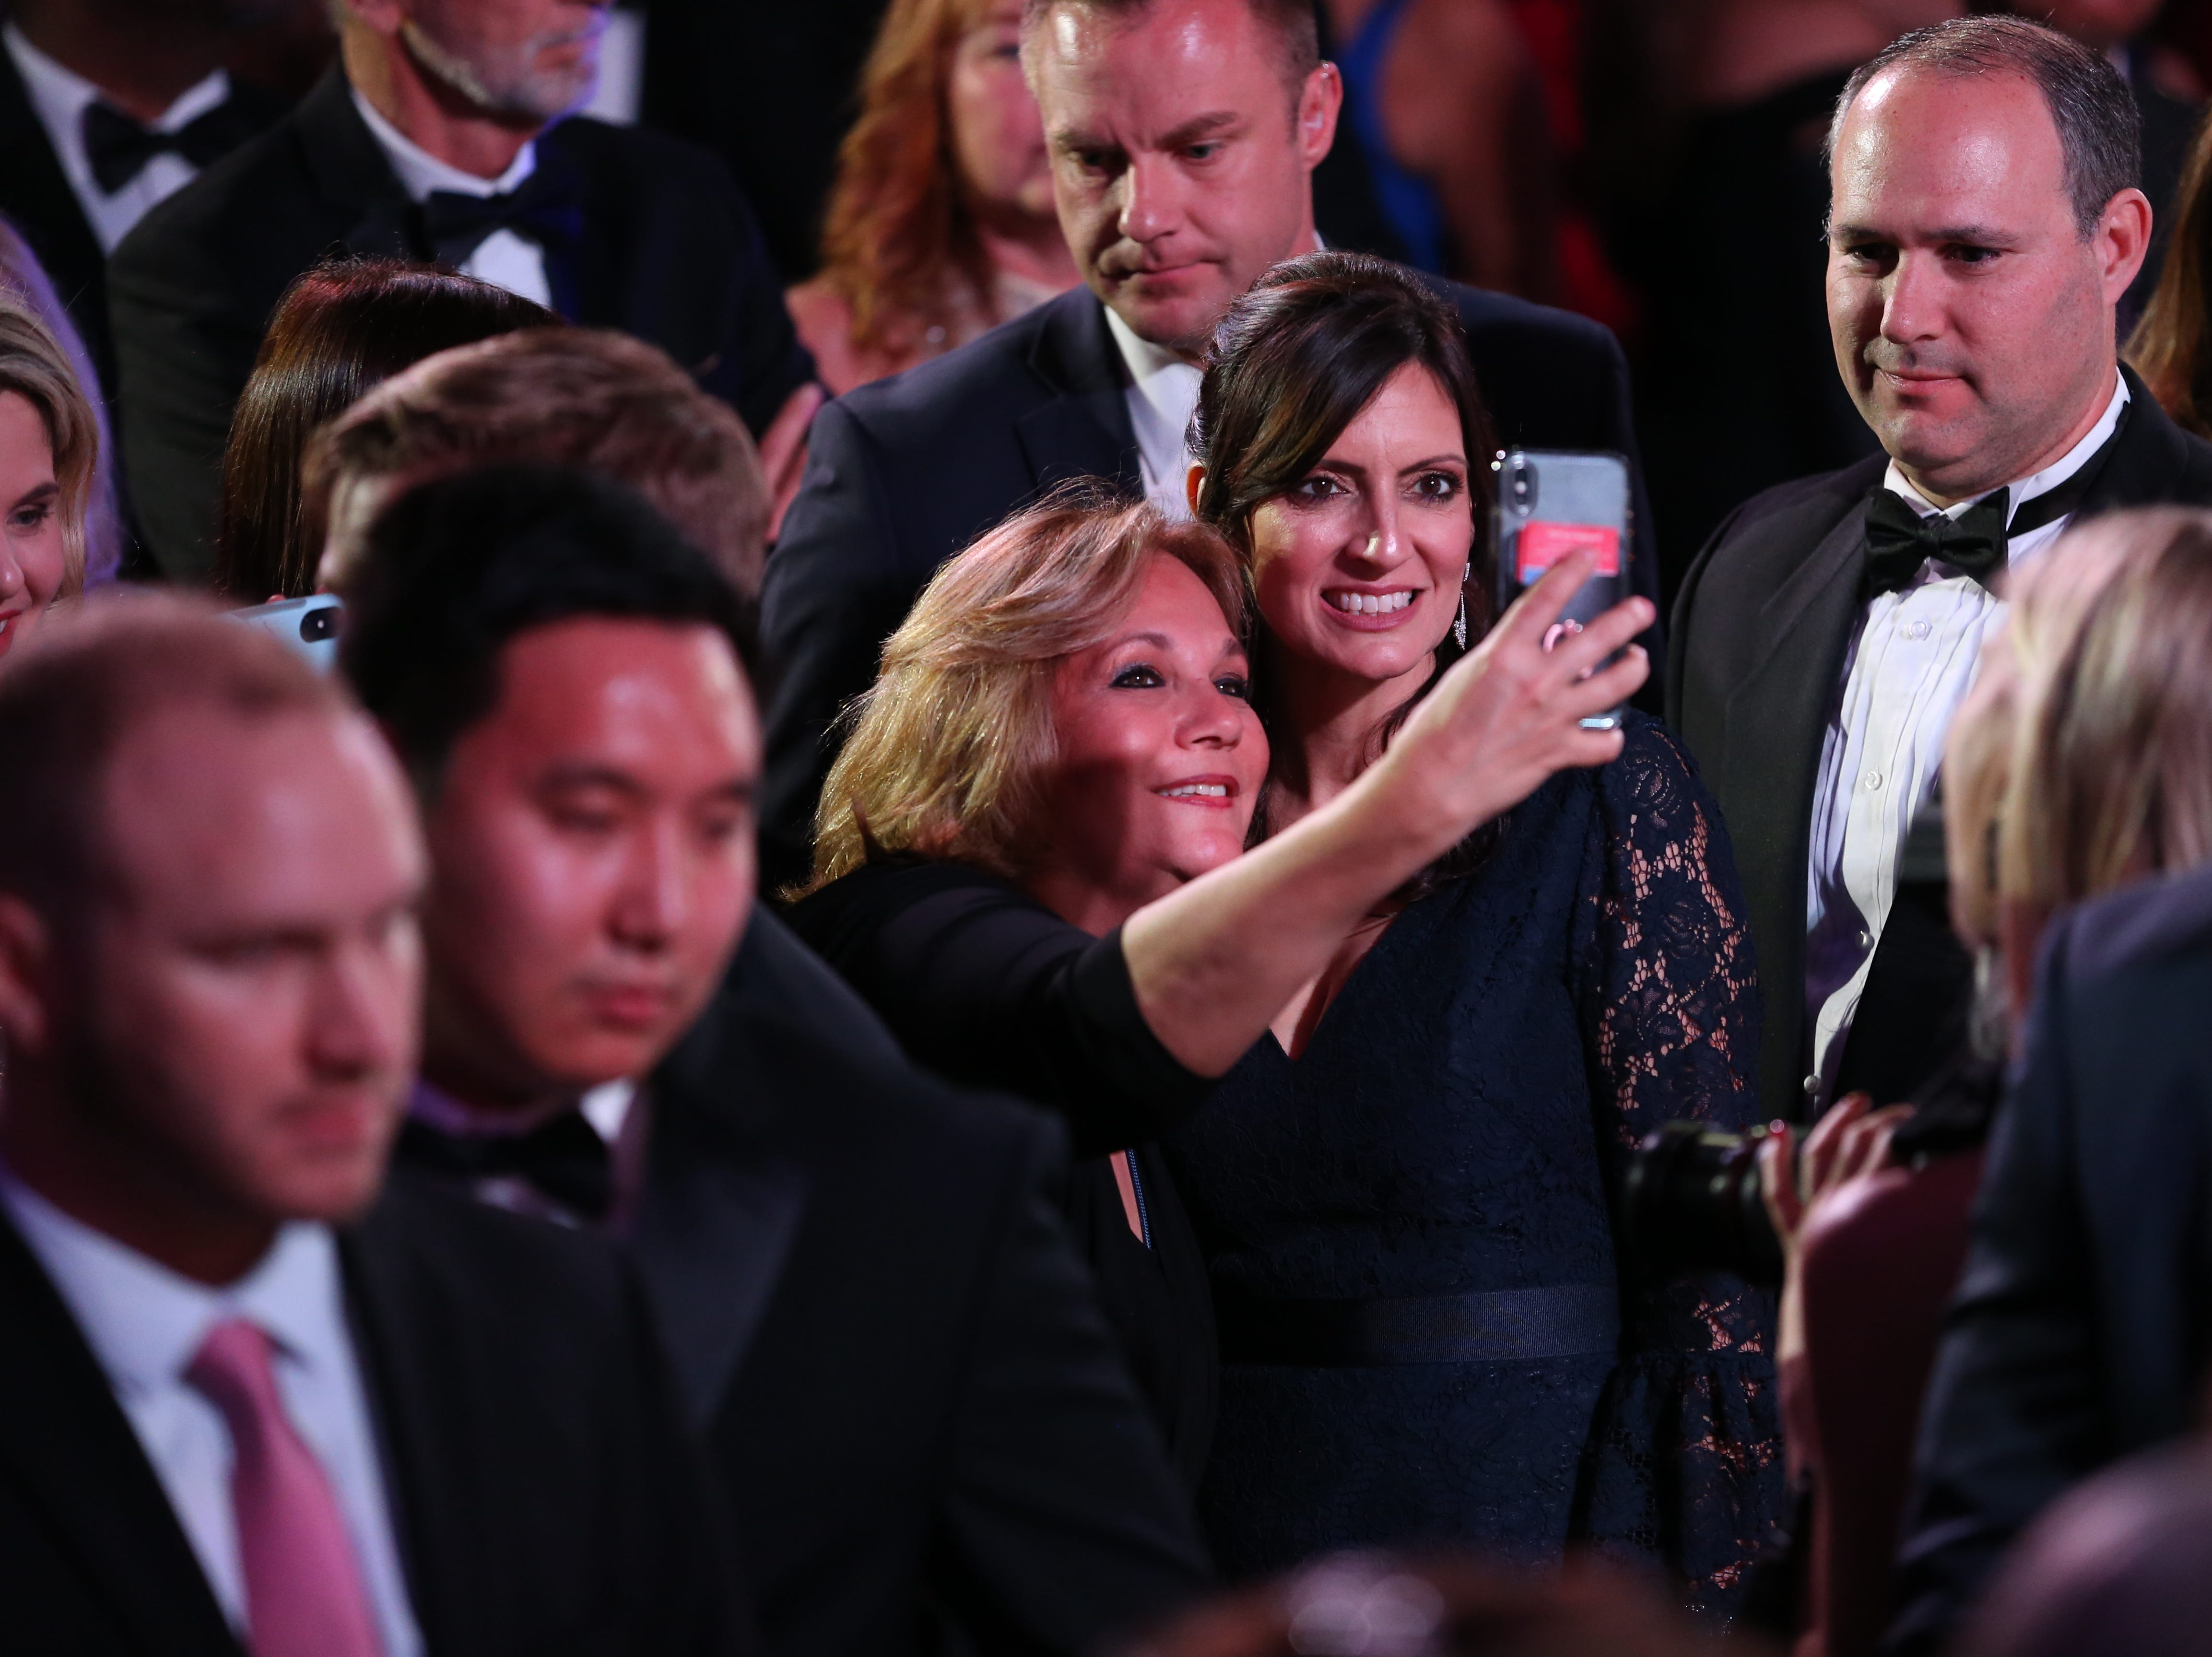 Hundreds of guests from all over Florida attend Florida's 46th Governor's Inaugural Ball at the Tucker Civic Center, Tuesday, Jan. 8, 2019. Lt. Gov. Jeanette Nunez poses for a selfie with a guest.